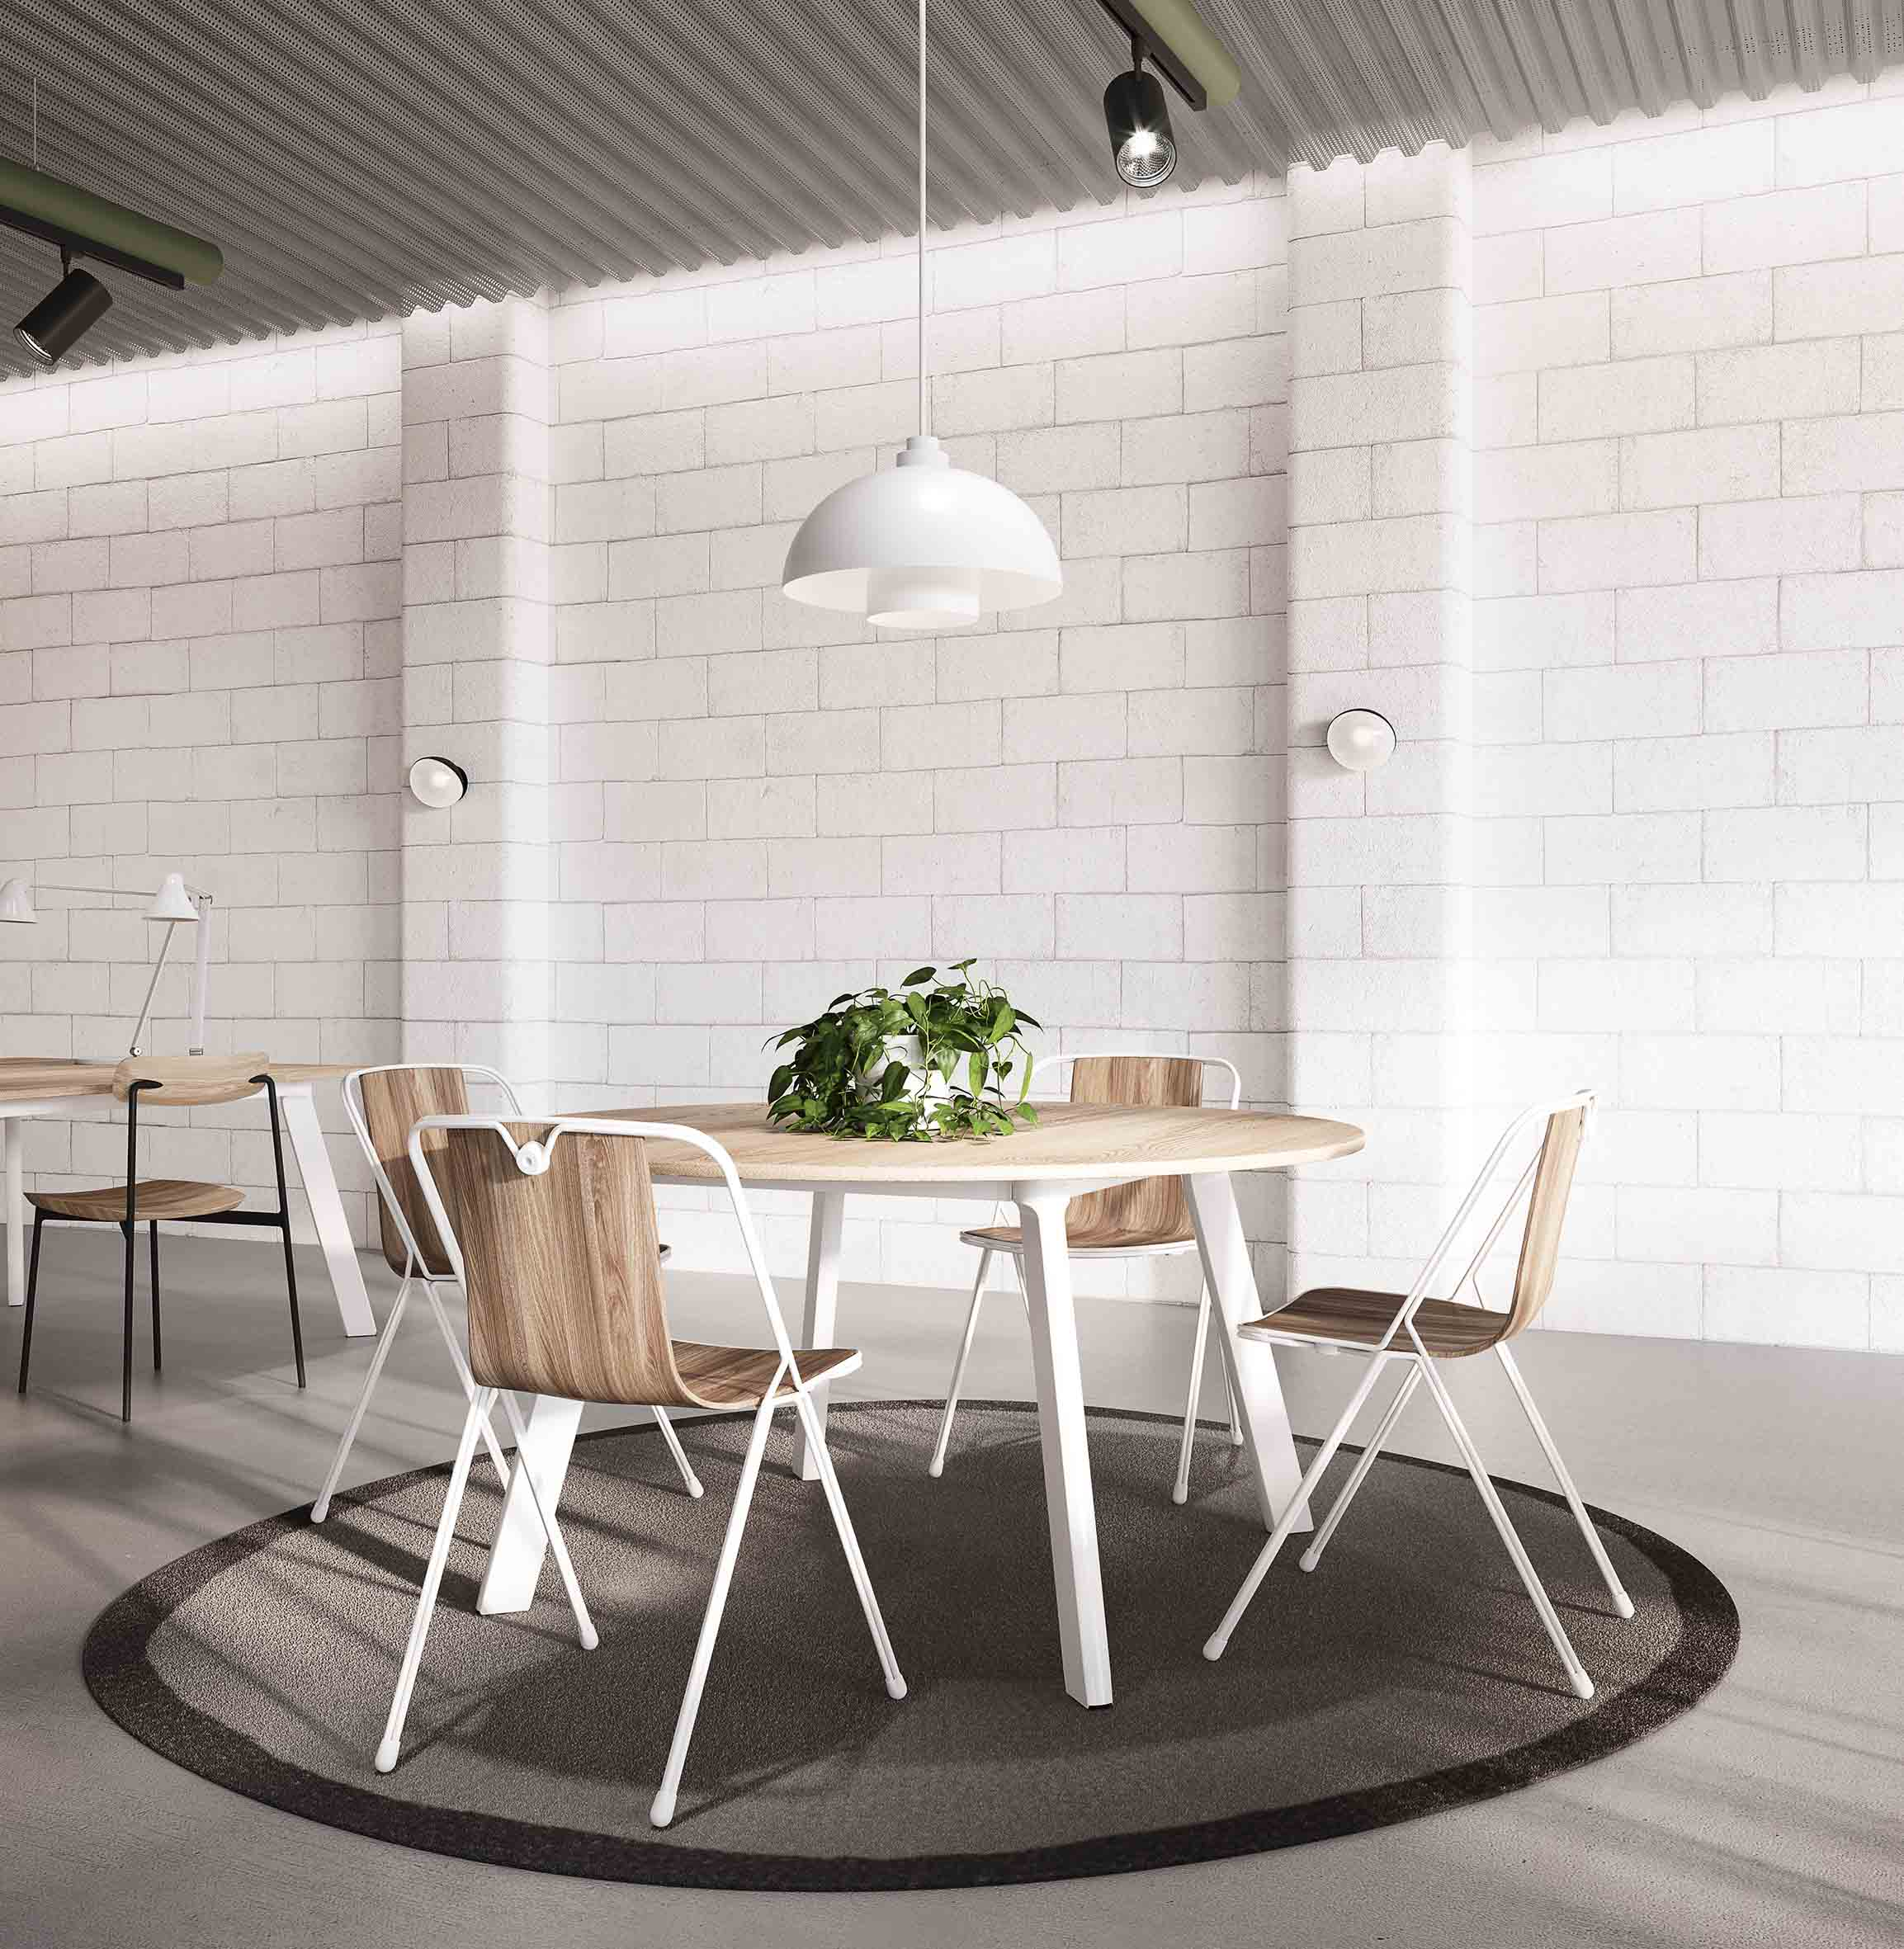 03_Chameleon table D140 and Strand chairs